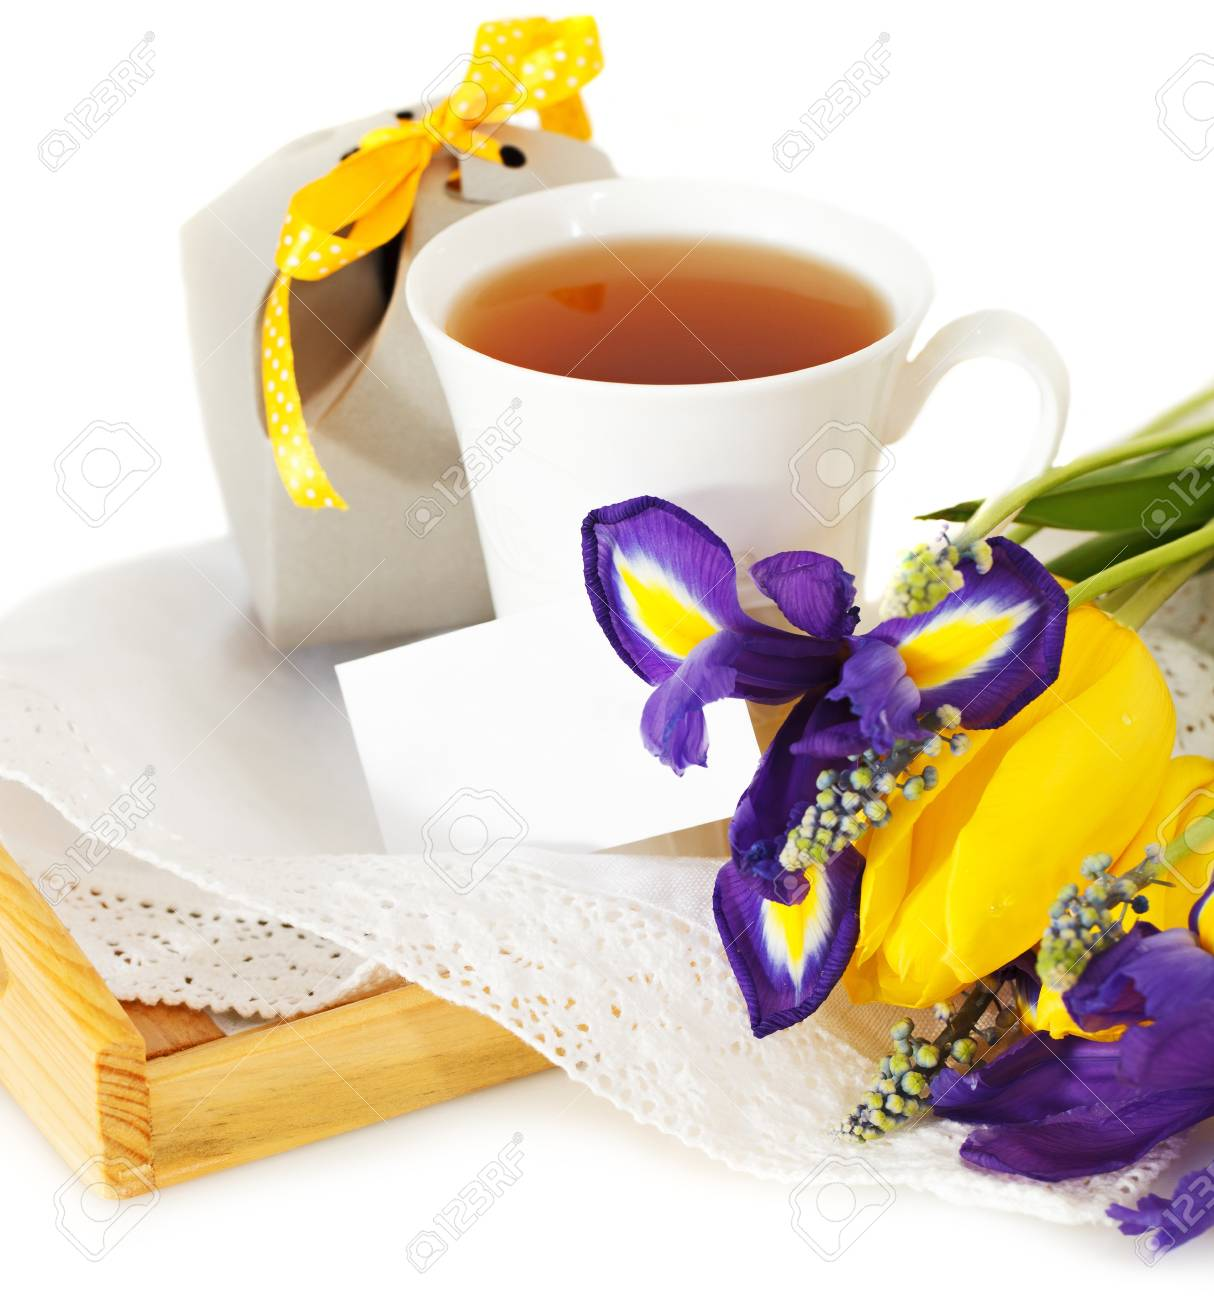 Tea with flowers and gift box for mom in Mother's Day Stock Photo - 18363483